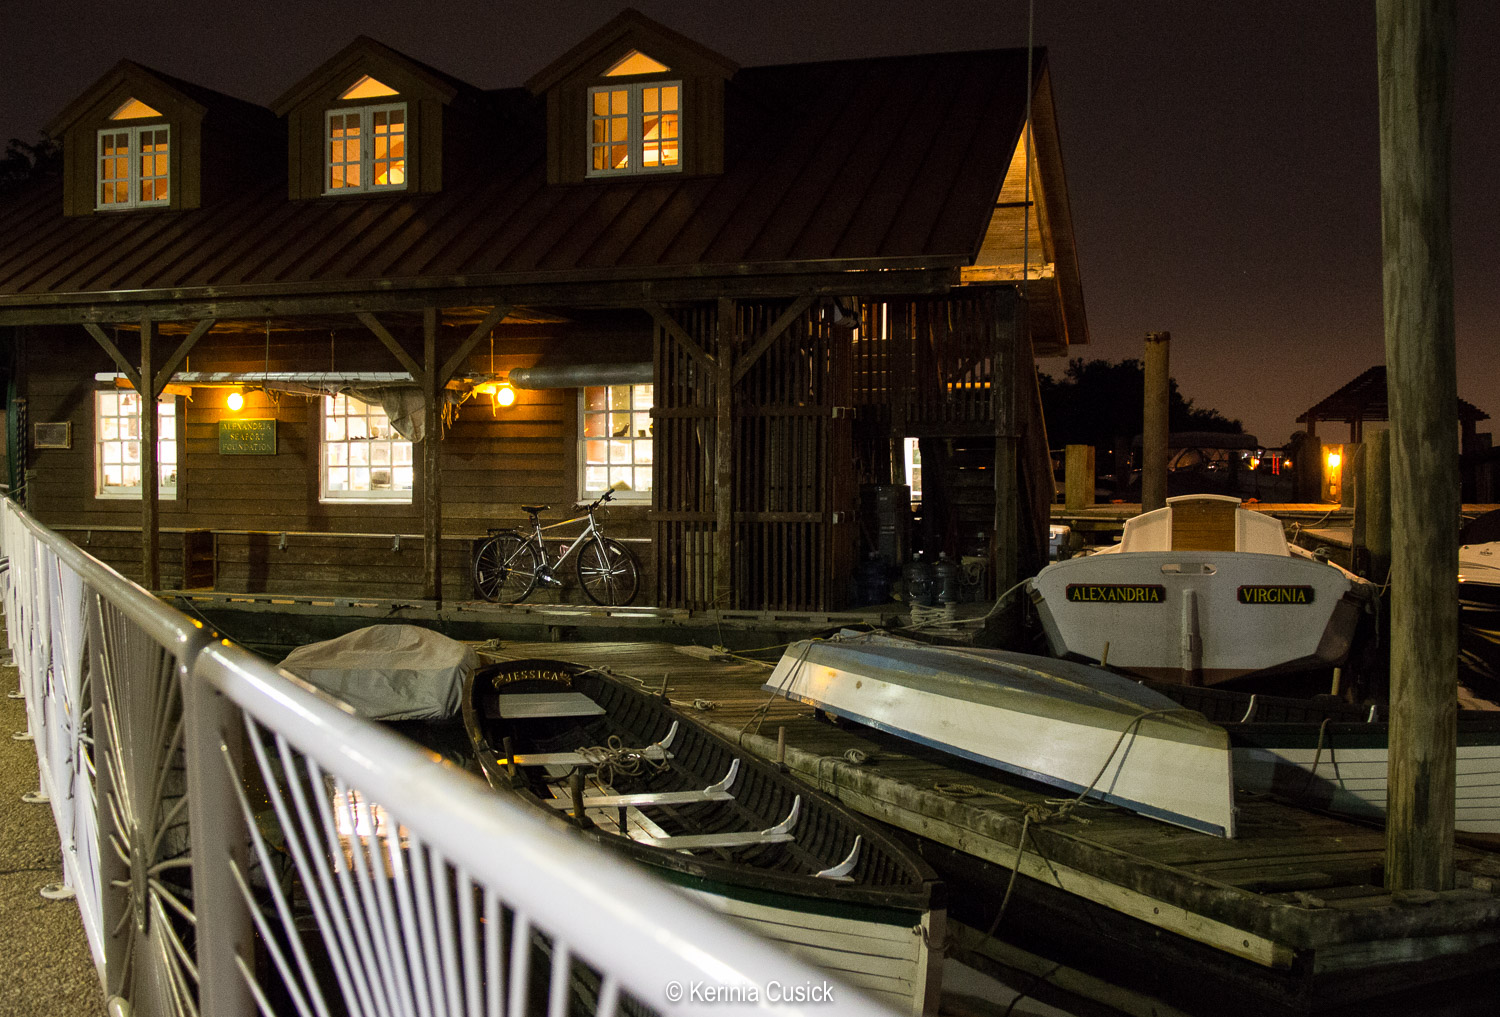 Alexandria night boat house.jpg